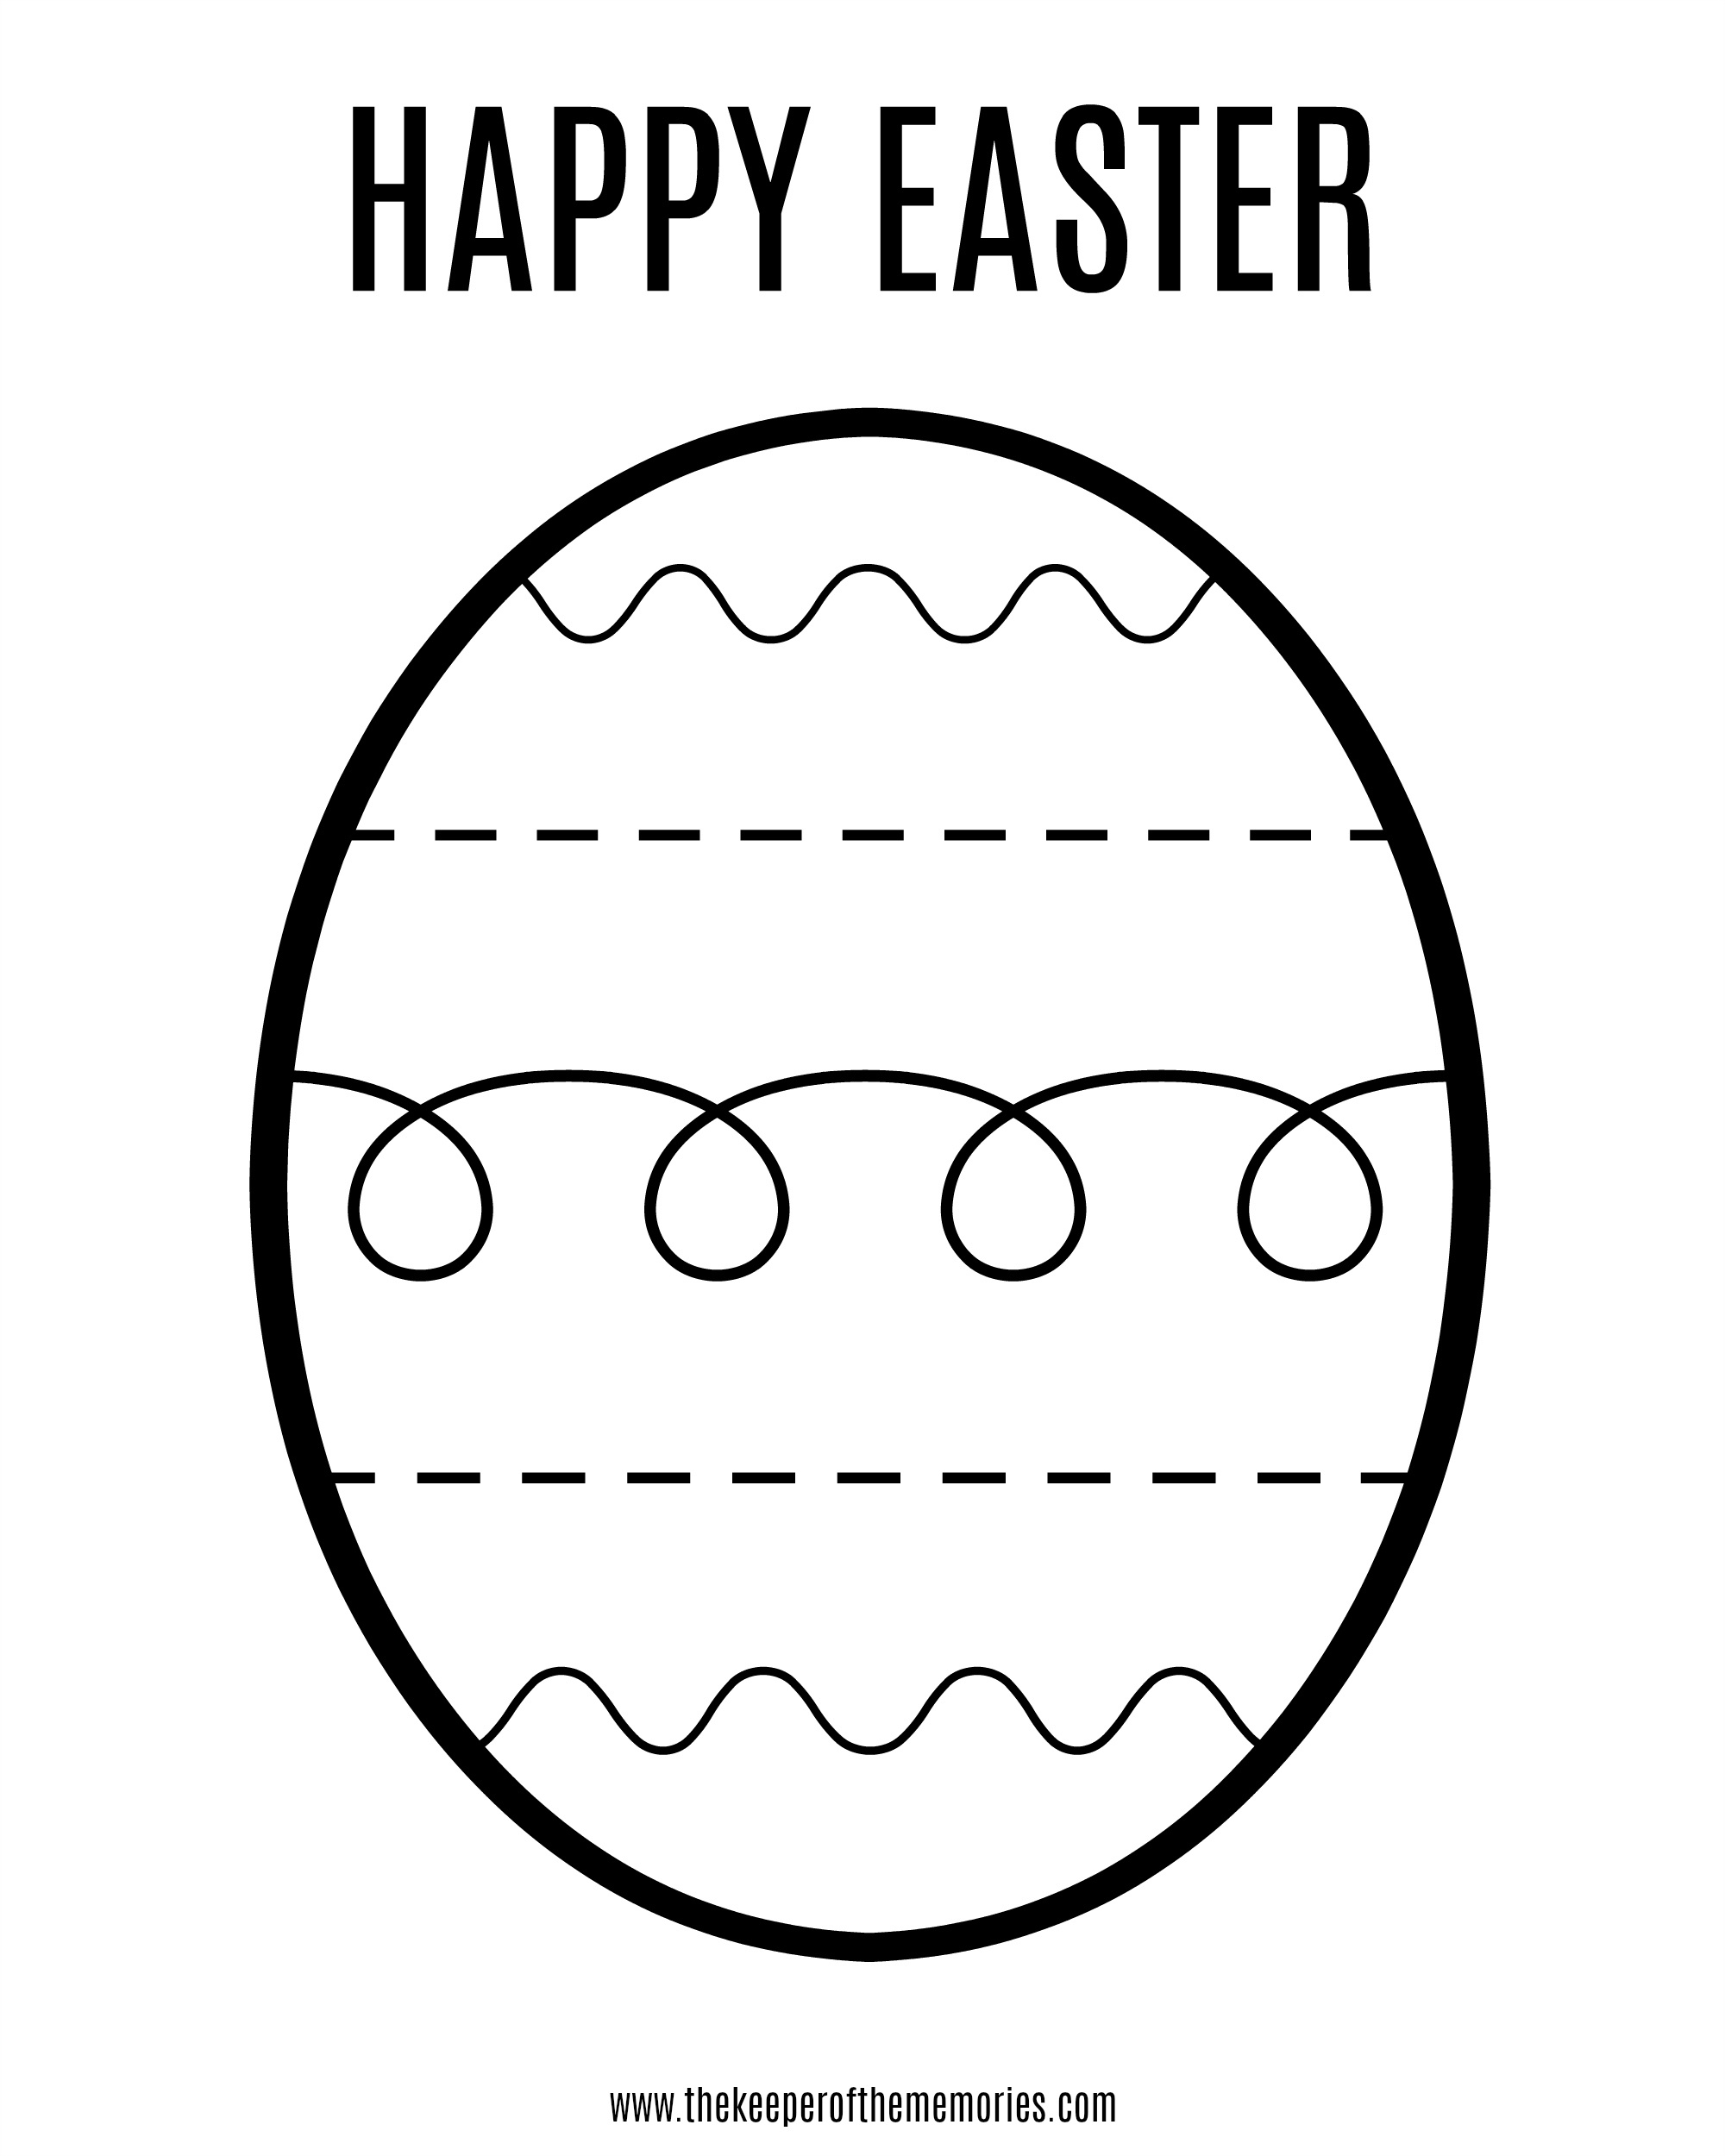 Free Printable Easter Coloring Sheet For Little Kids - The Keeper Of - Free Printable Easter Basket Coloring Pages